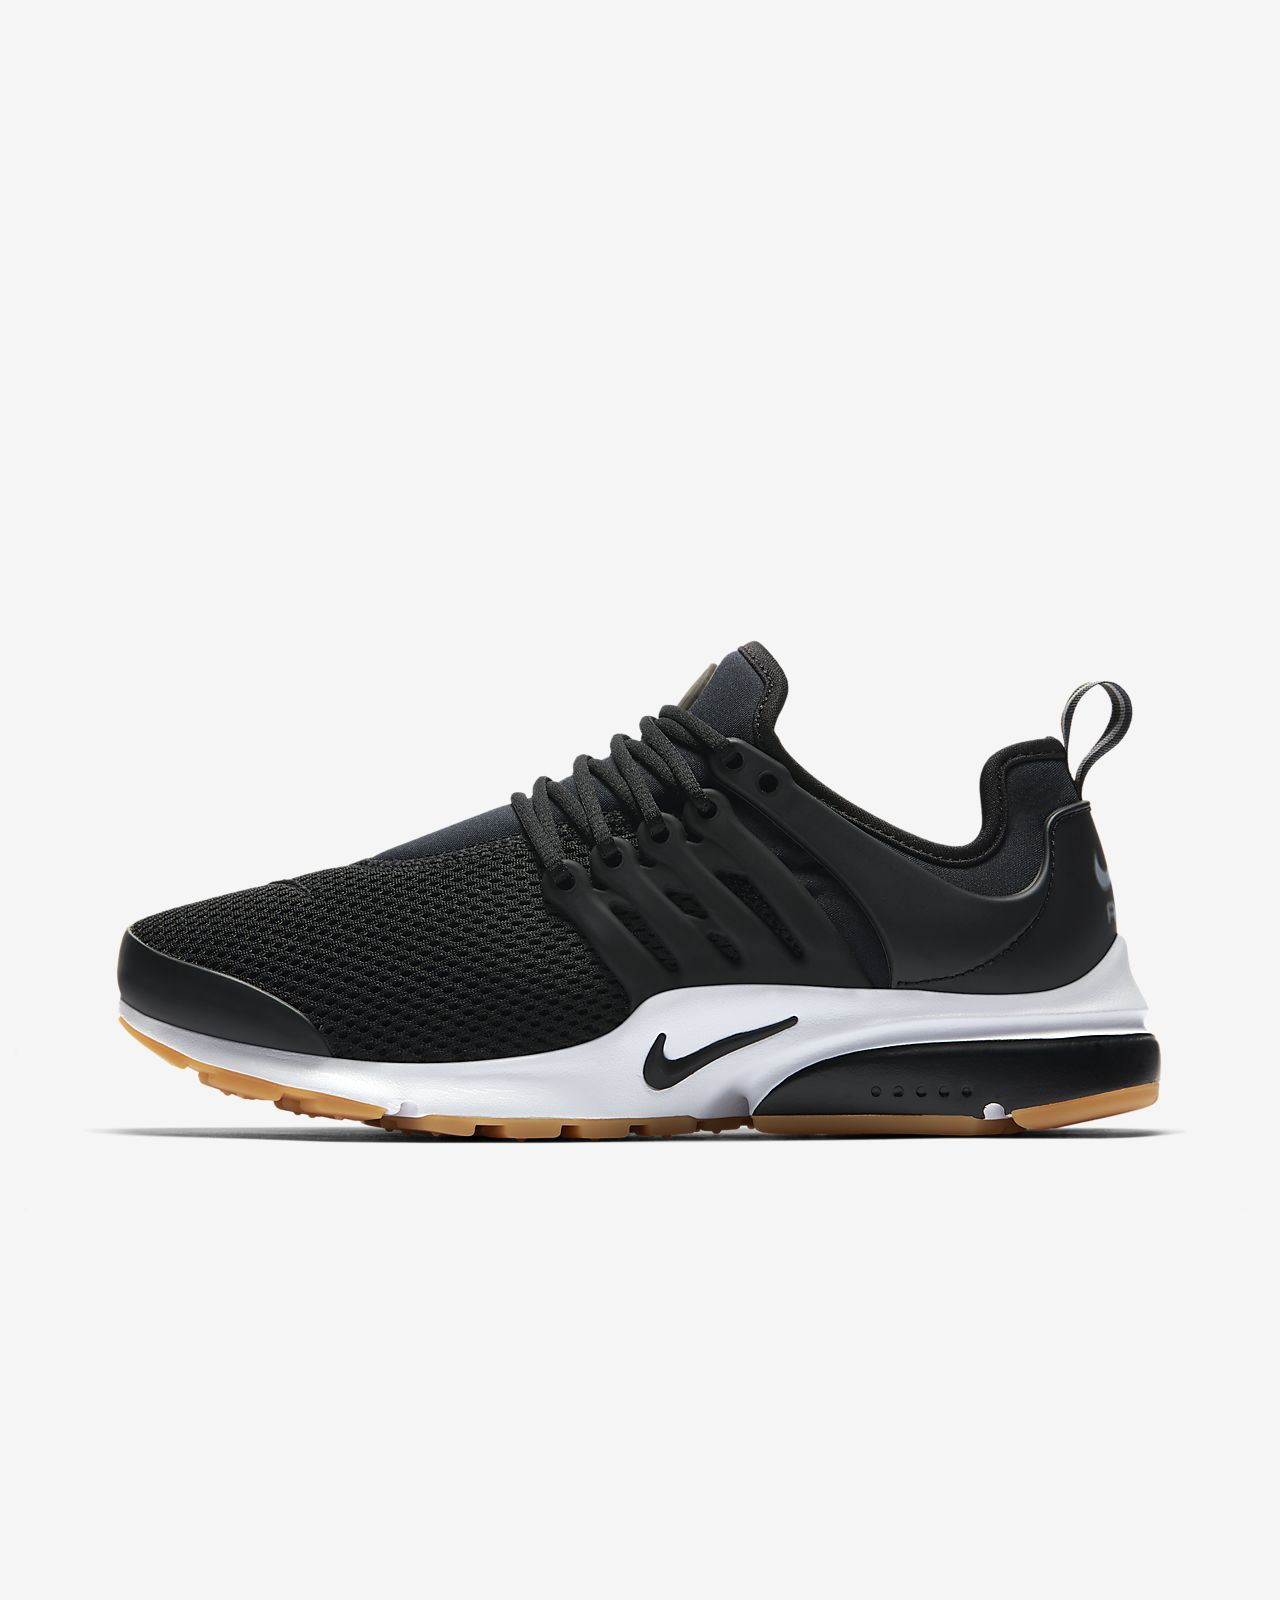 watch 37345 189a4 ... Nike Air Presto Women s Shoe